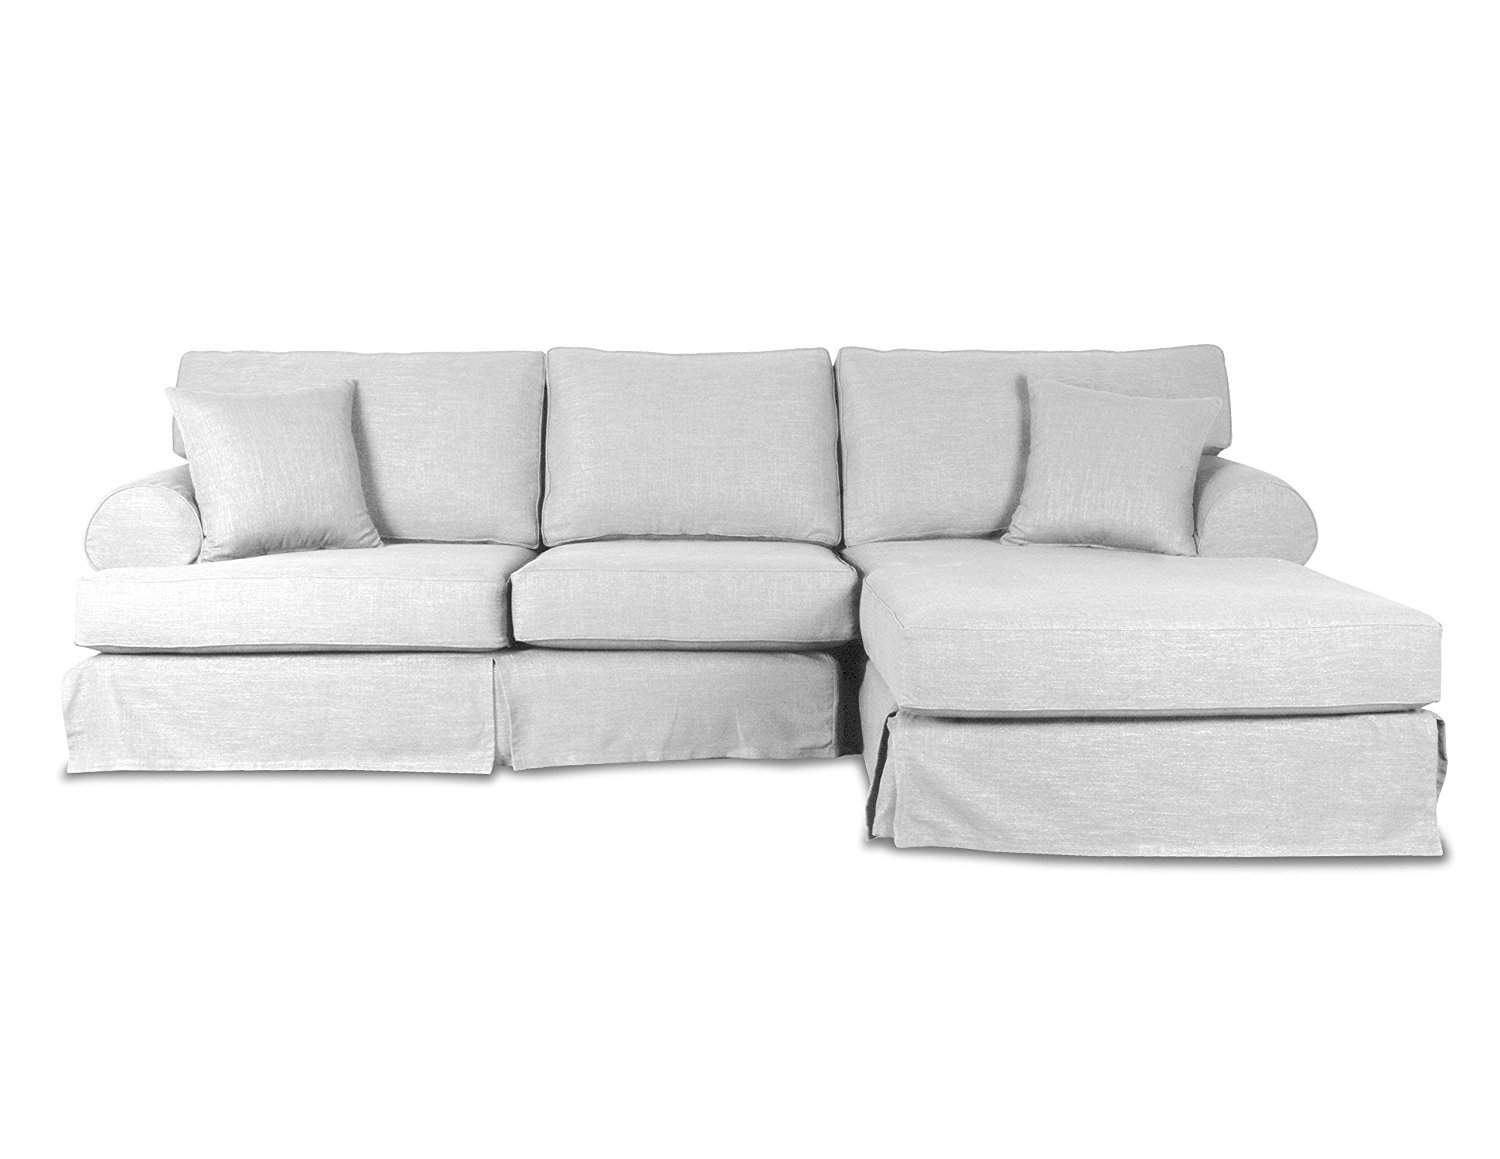 South cone home new york linen right sectional sofa home for Sectional sofa new york